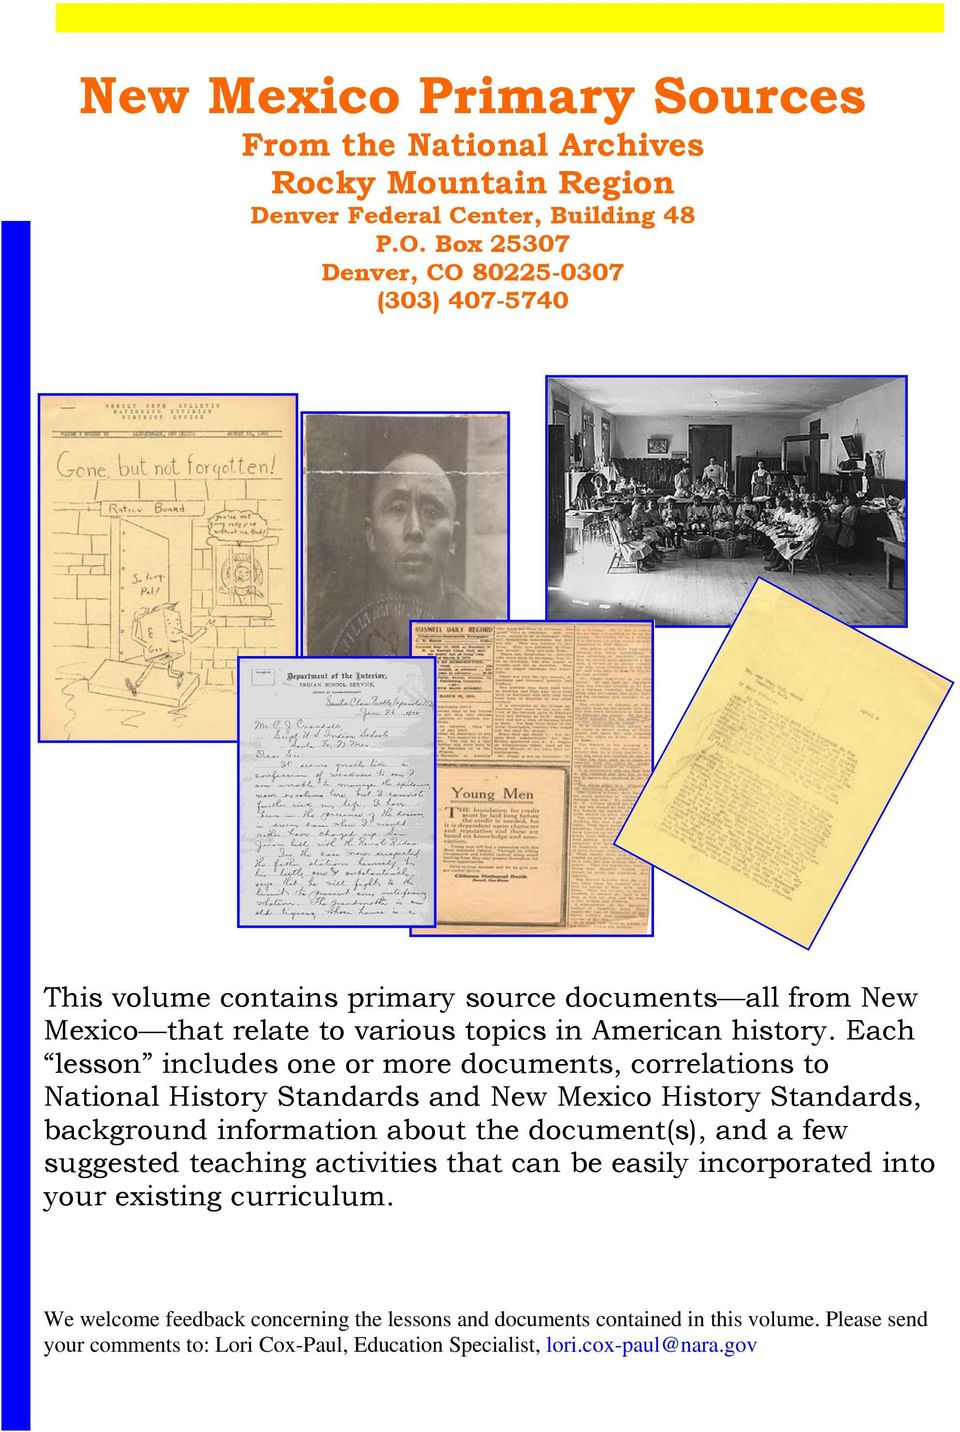 Each lesson includes one or more documents, correlations to National History Standards and New Mexico History Standards, background information about the document(s), and a few